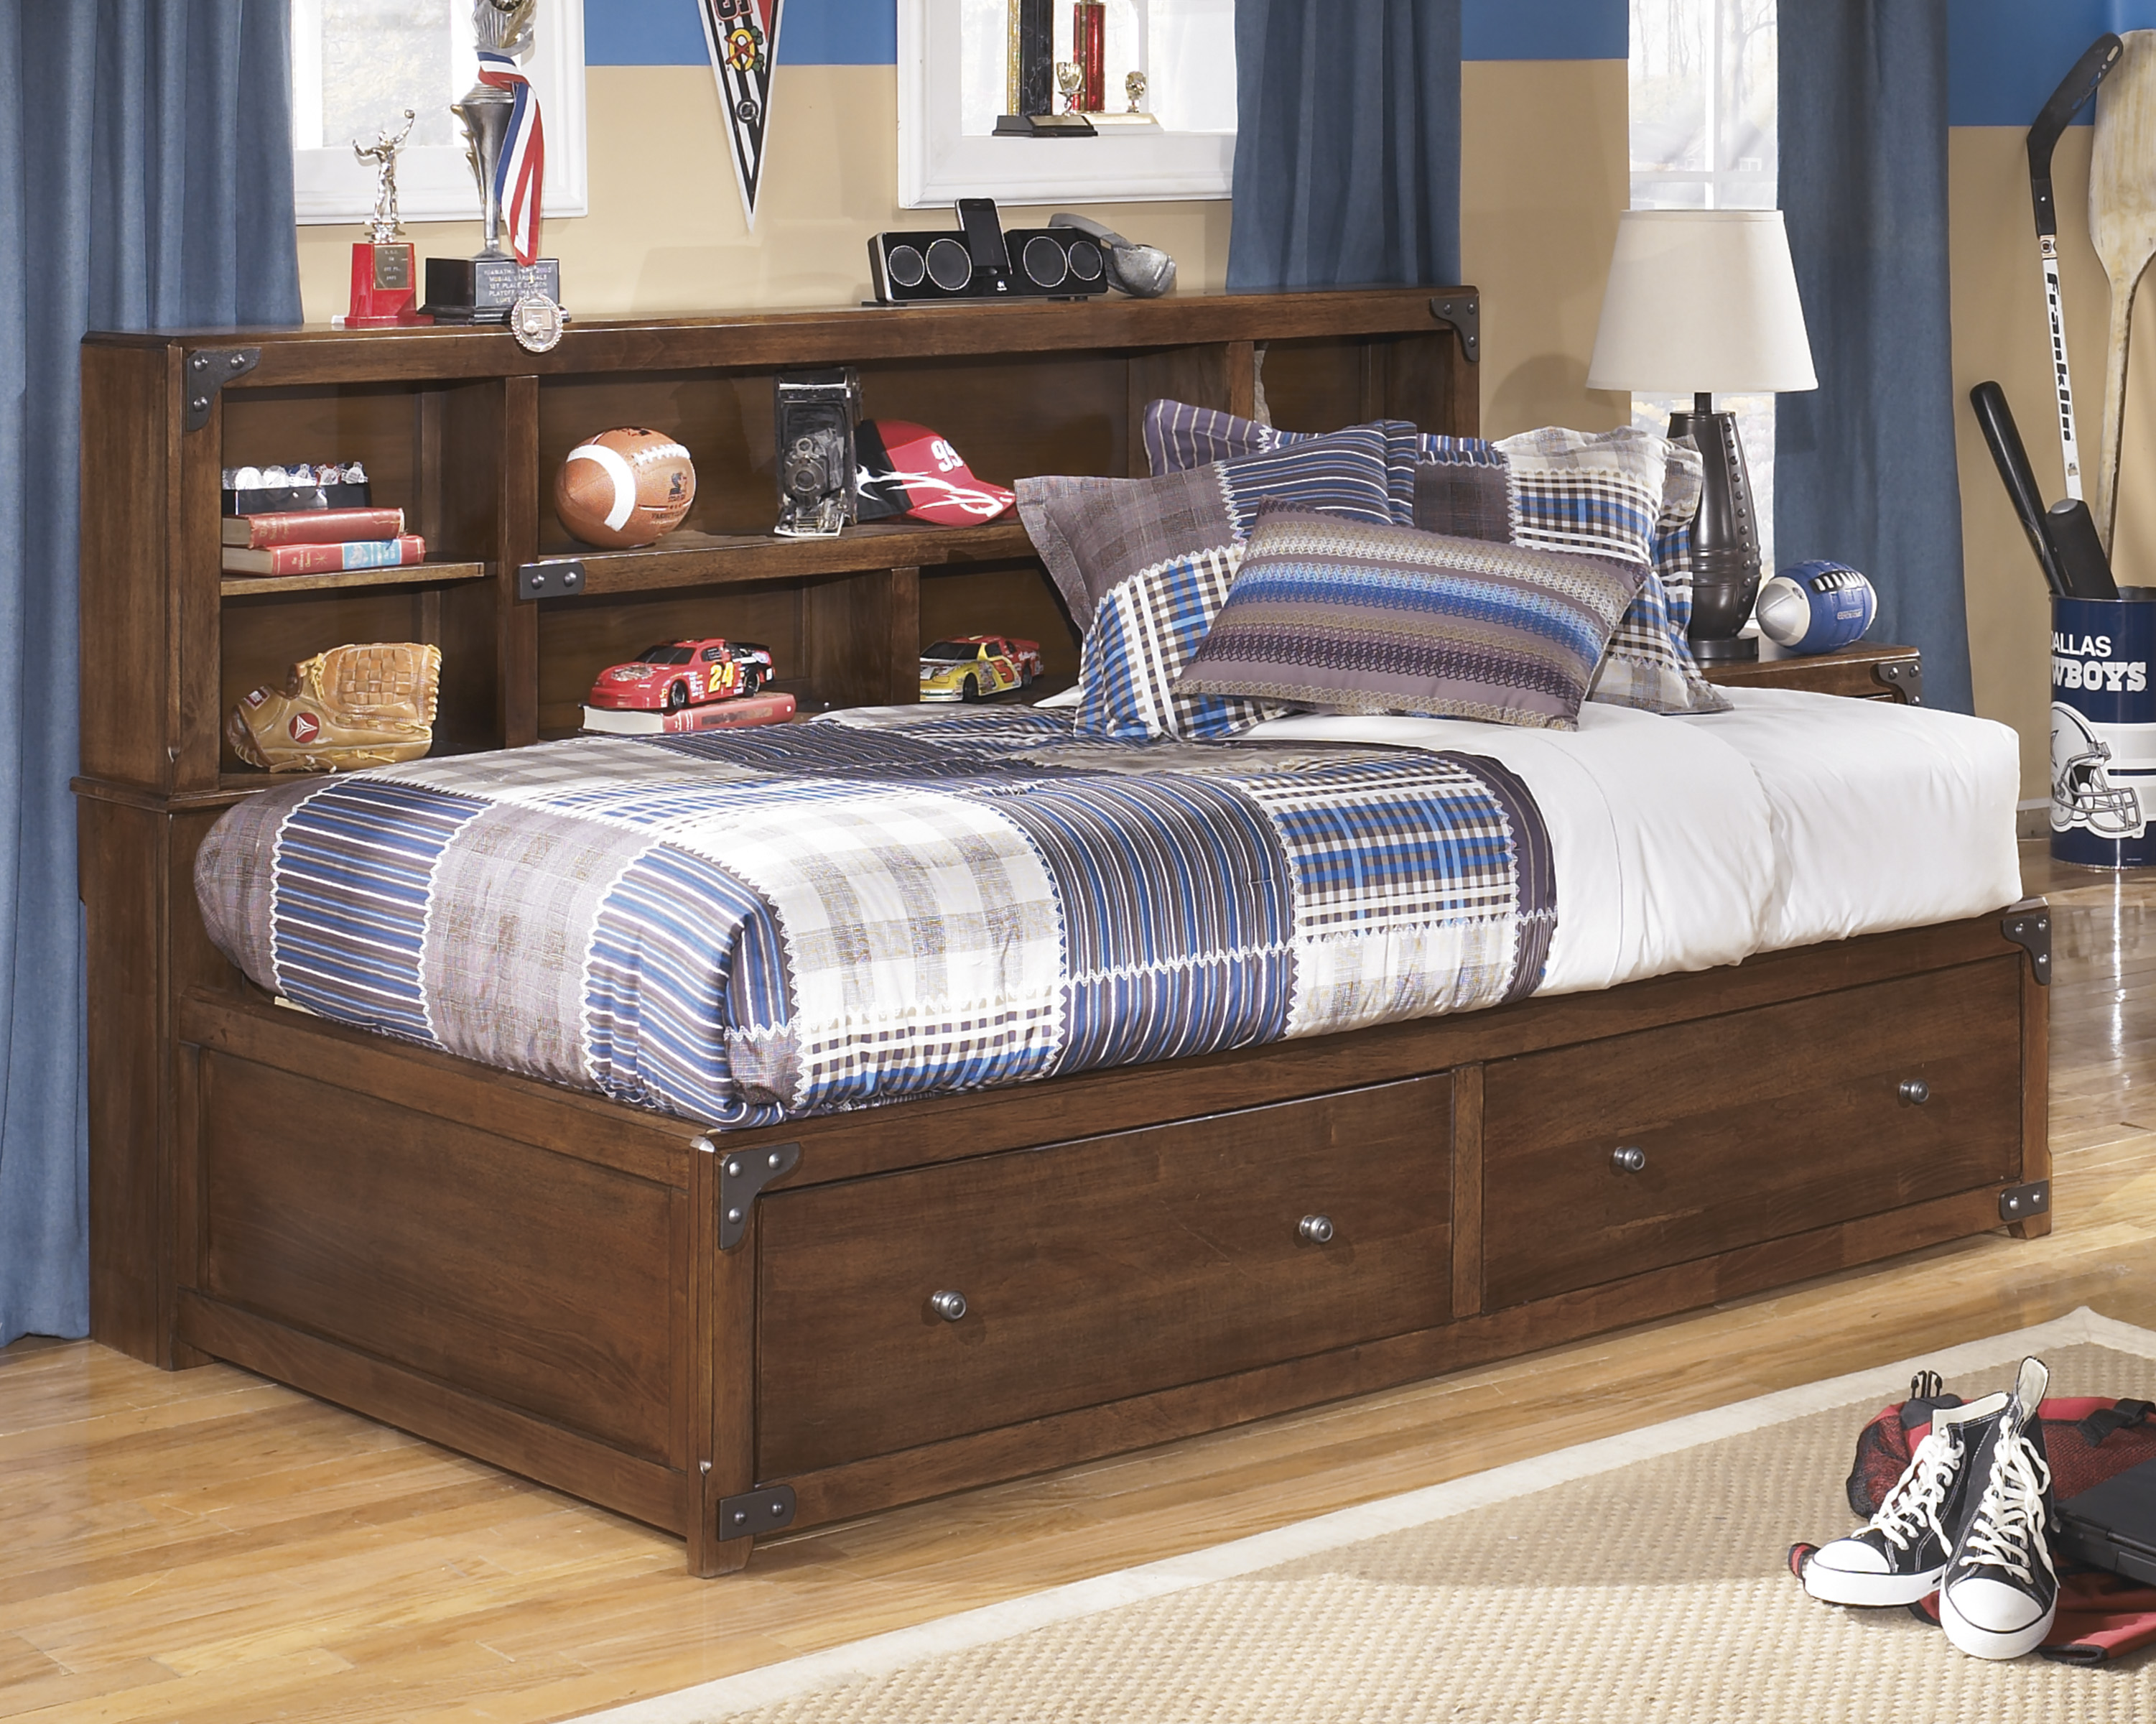 Ashley Furniture Bed With Storage Gallery